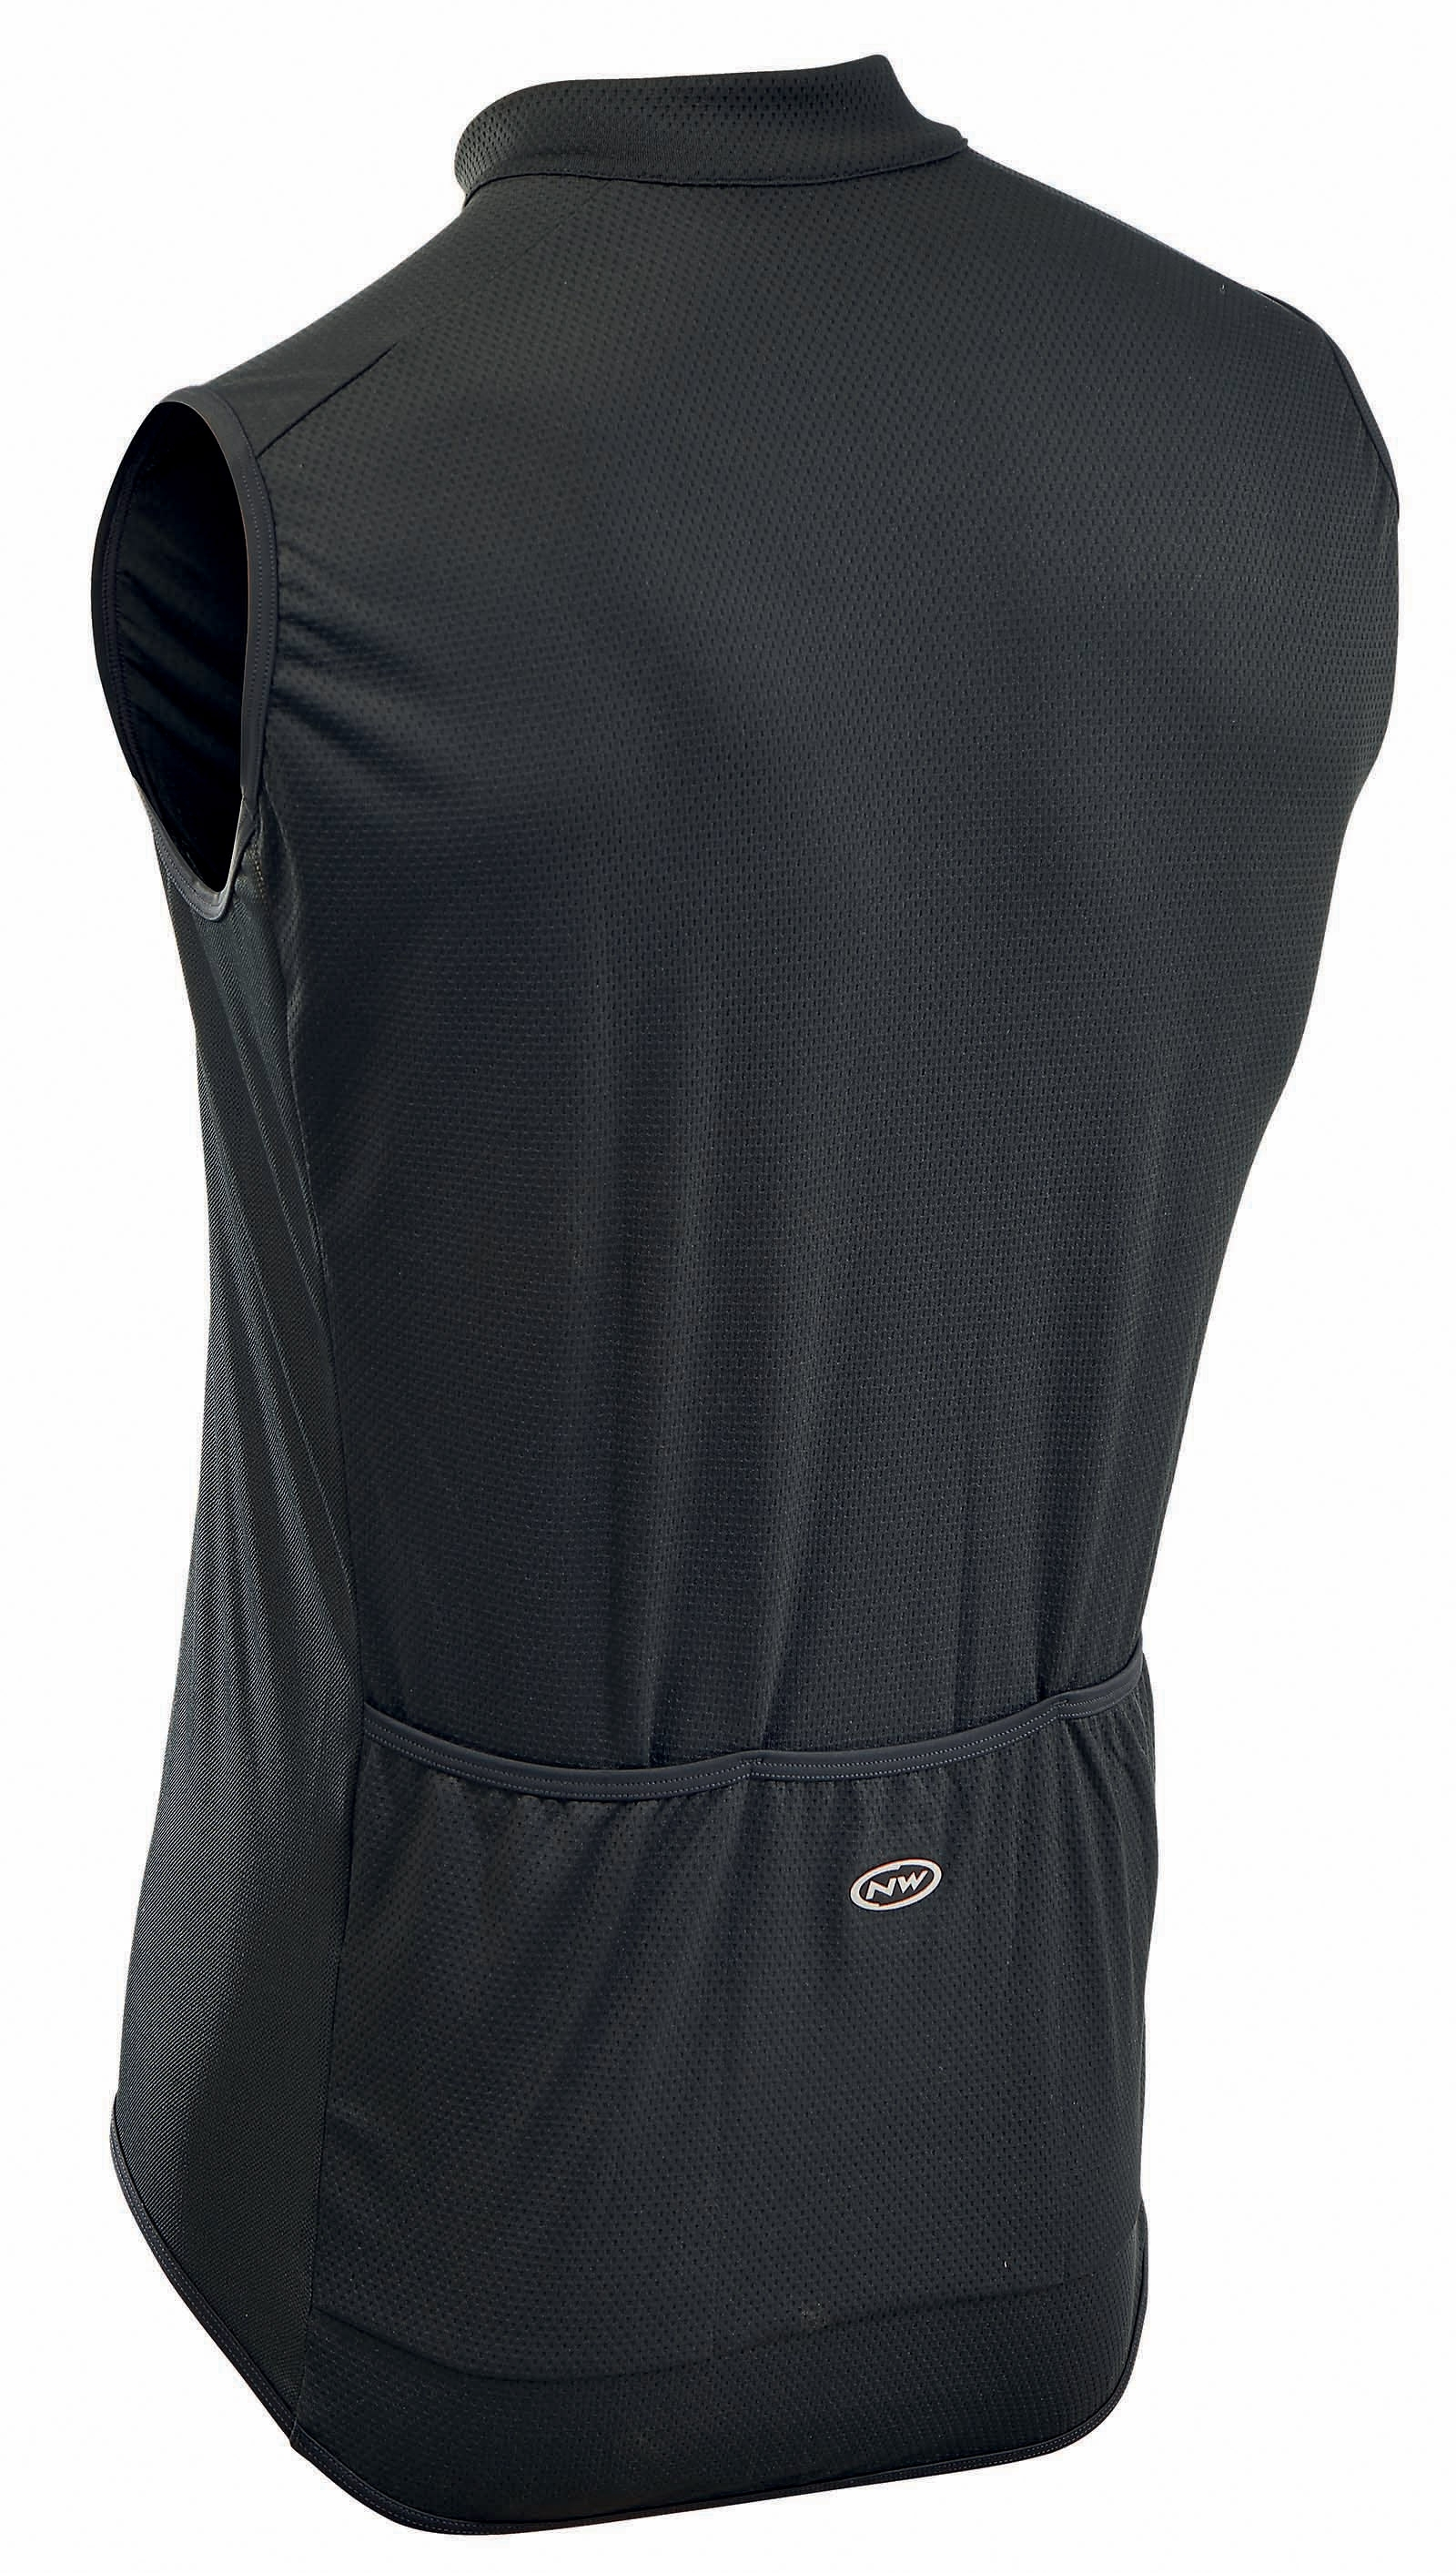 NORTHWAVE Man cycling jersey sleeveless FORCE black